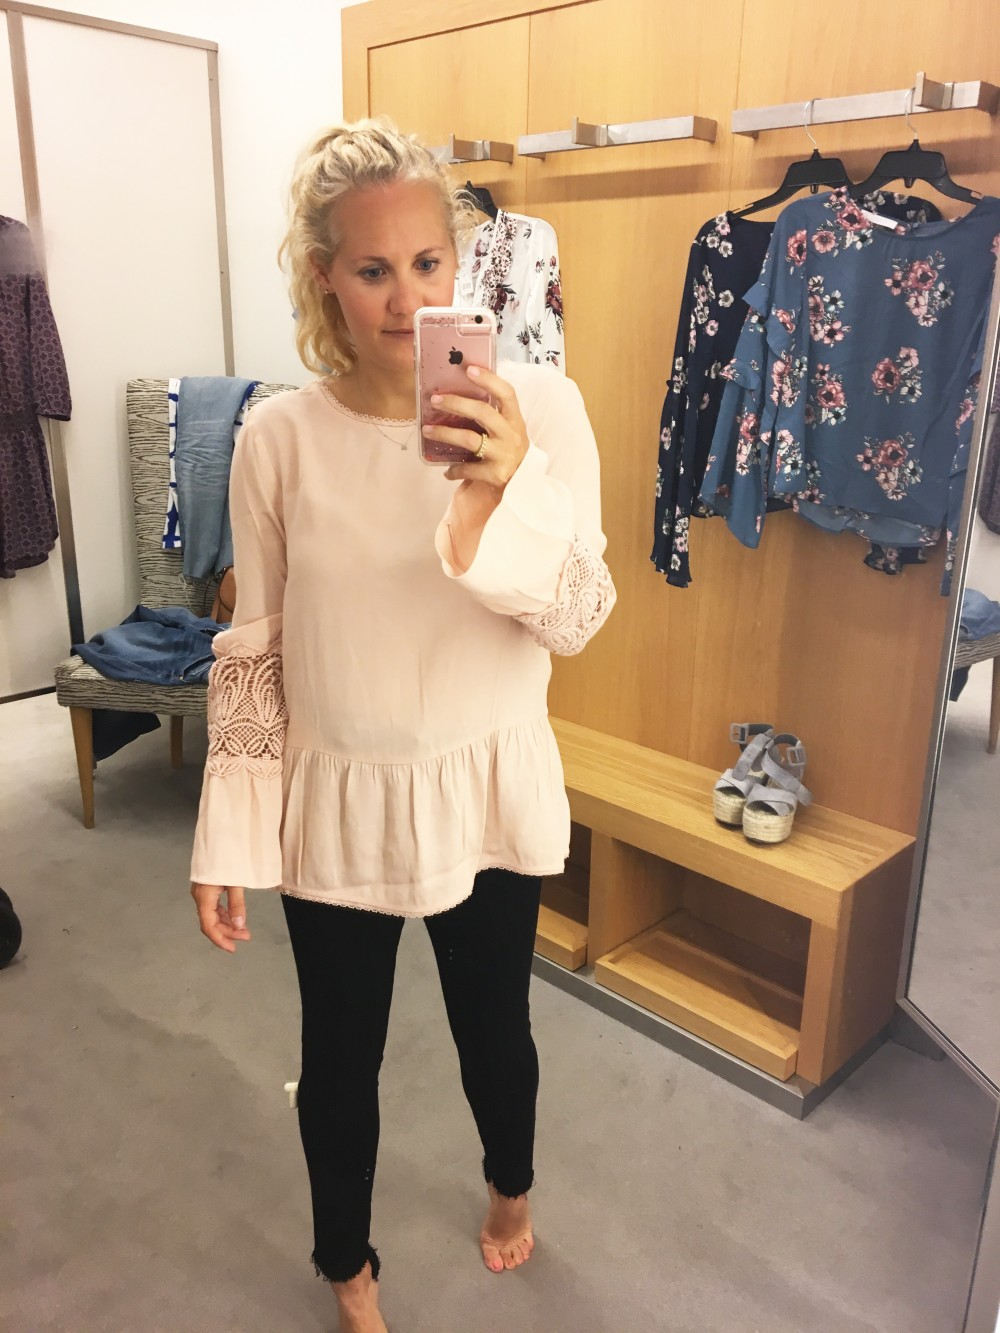 Dressing Room Diaries- Nordstrom Anniversary Sale-Fall Tops-Blogger Picks for the NSale-Nordstrom Sale-Fall Style-Fall Fashion 2017-Have Need Want 8